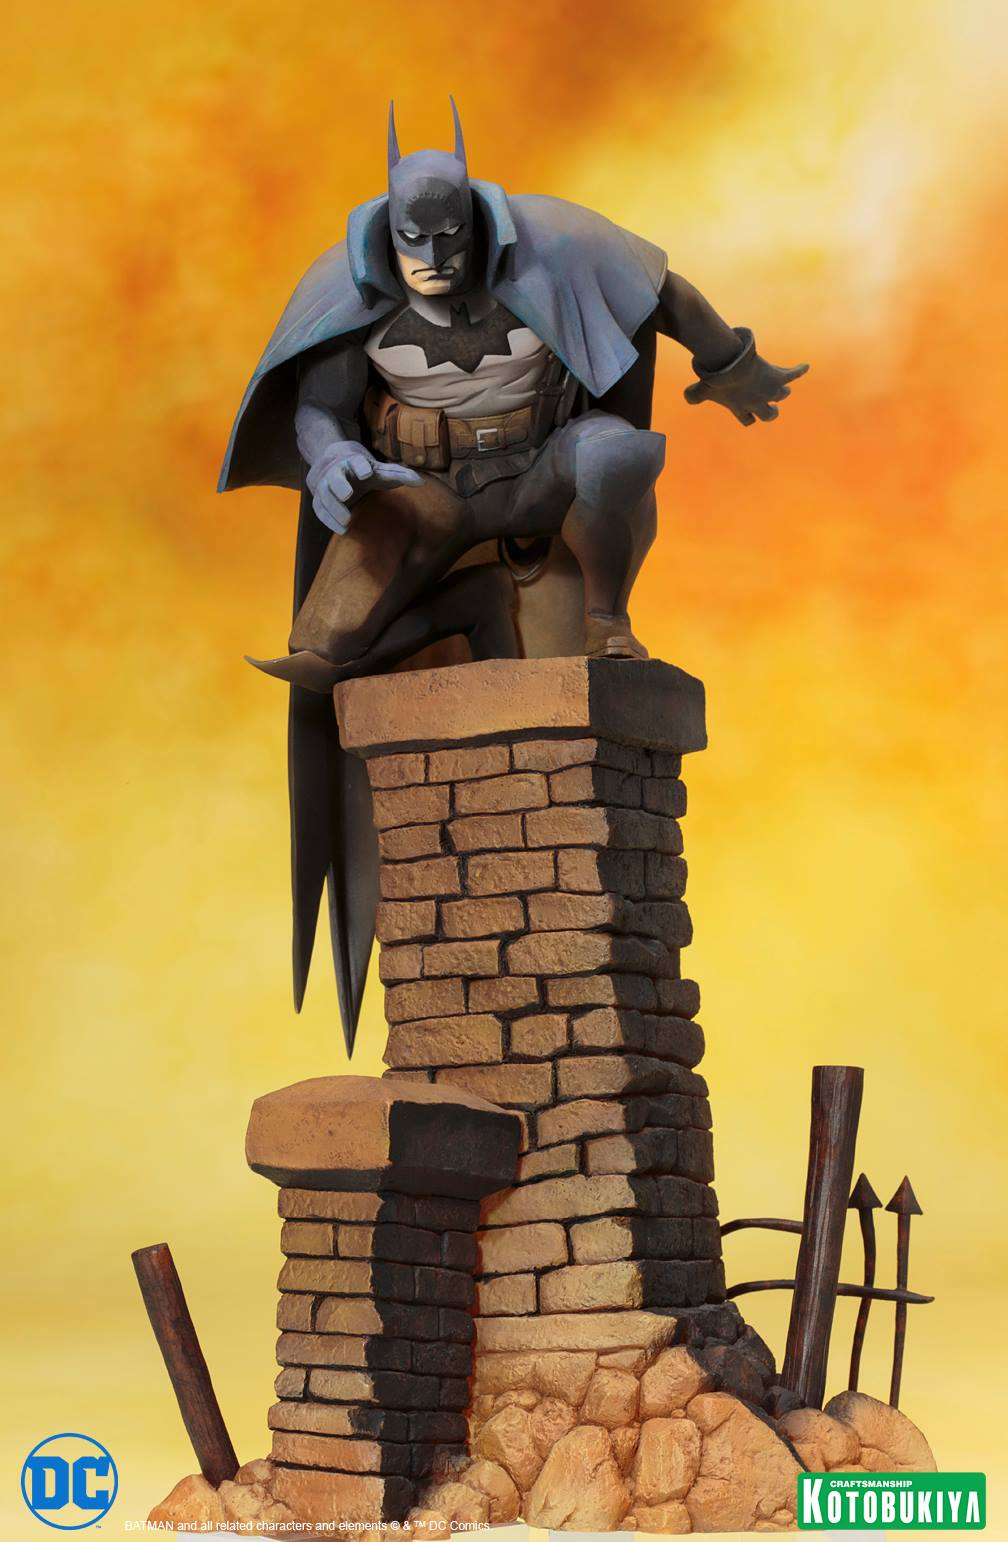 Kotobukiya DC Comics Batman Gotham by Gaslight ARTFX+ Statue